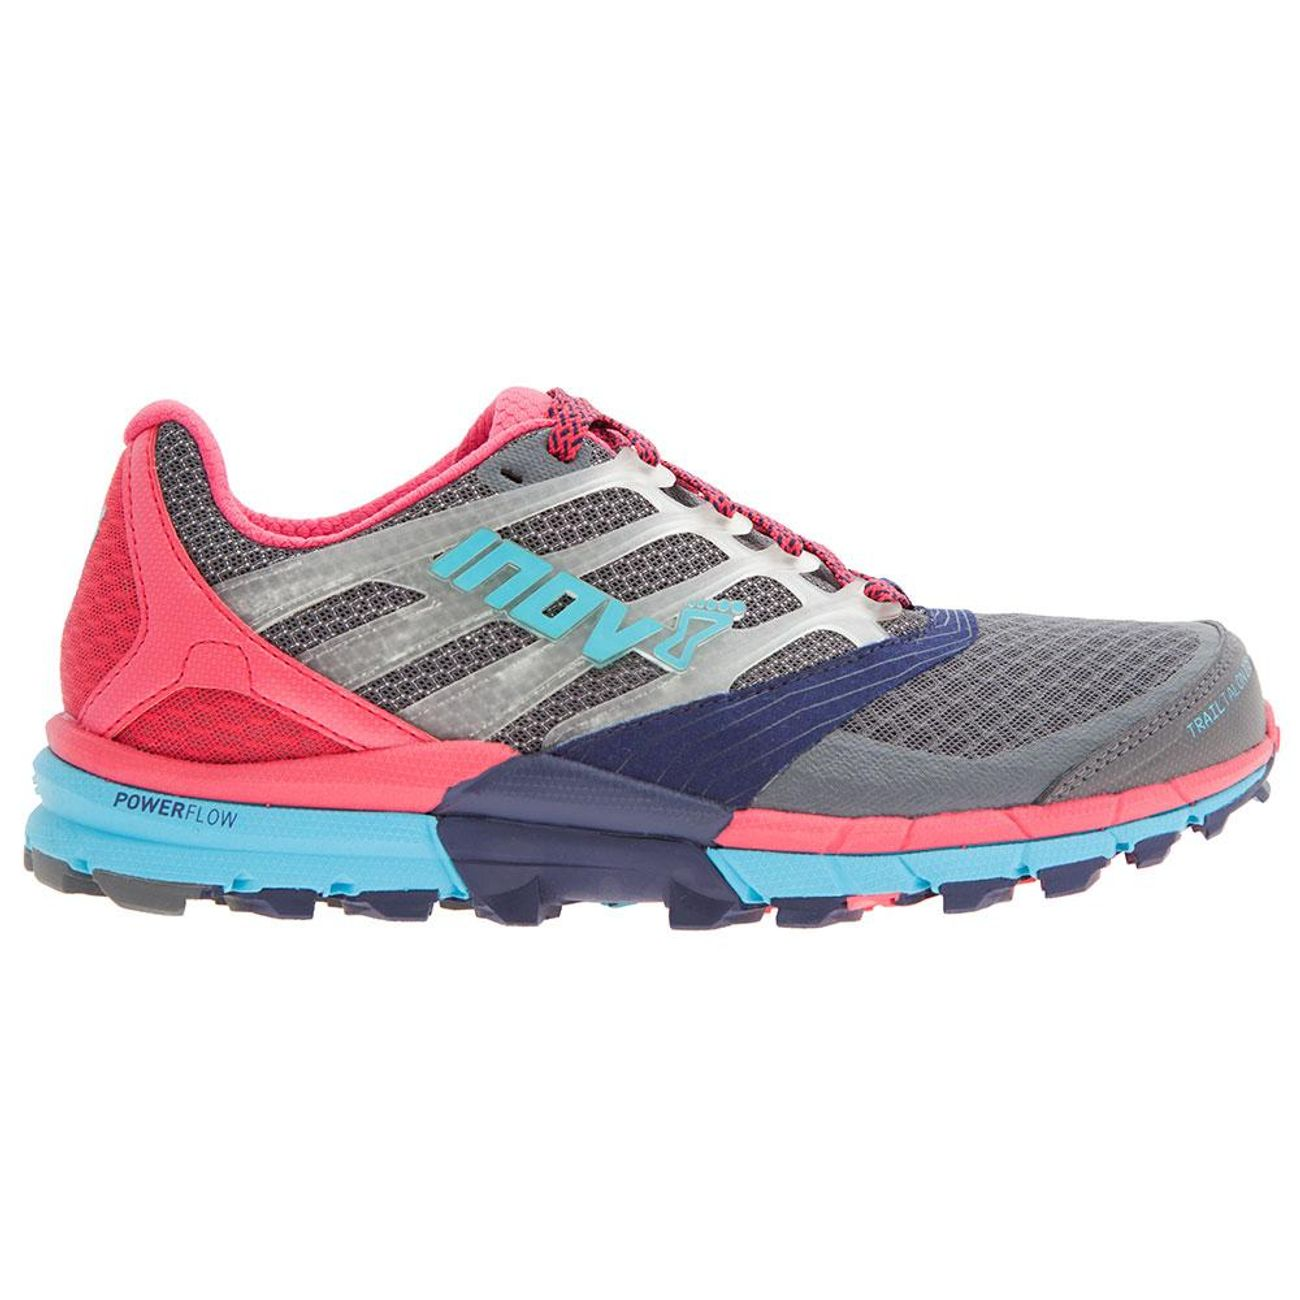 Femme Inov8 S Trailclaw 275 Running JF1lKc